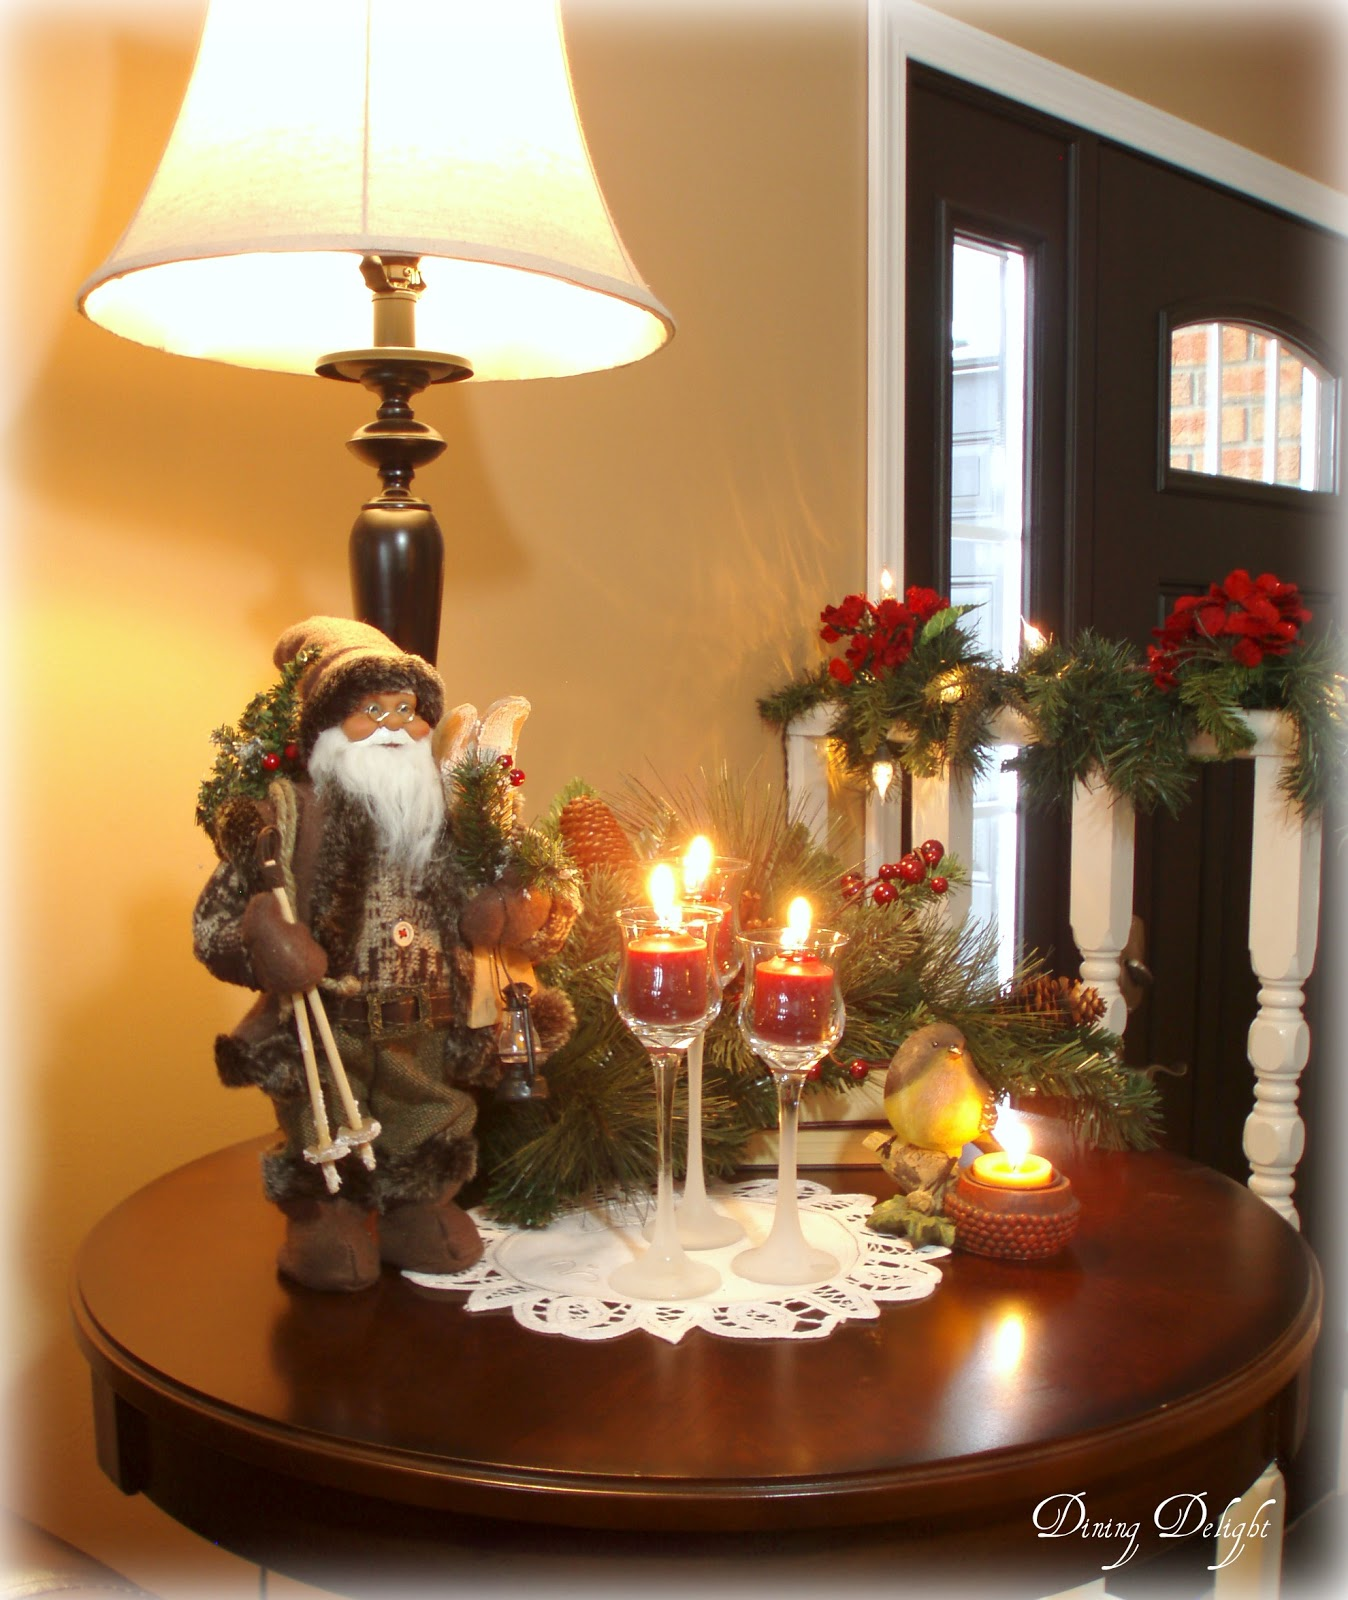 Home Table Decor: Dining Delight: Christmas Home Tour